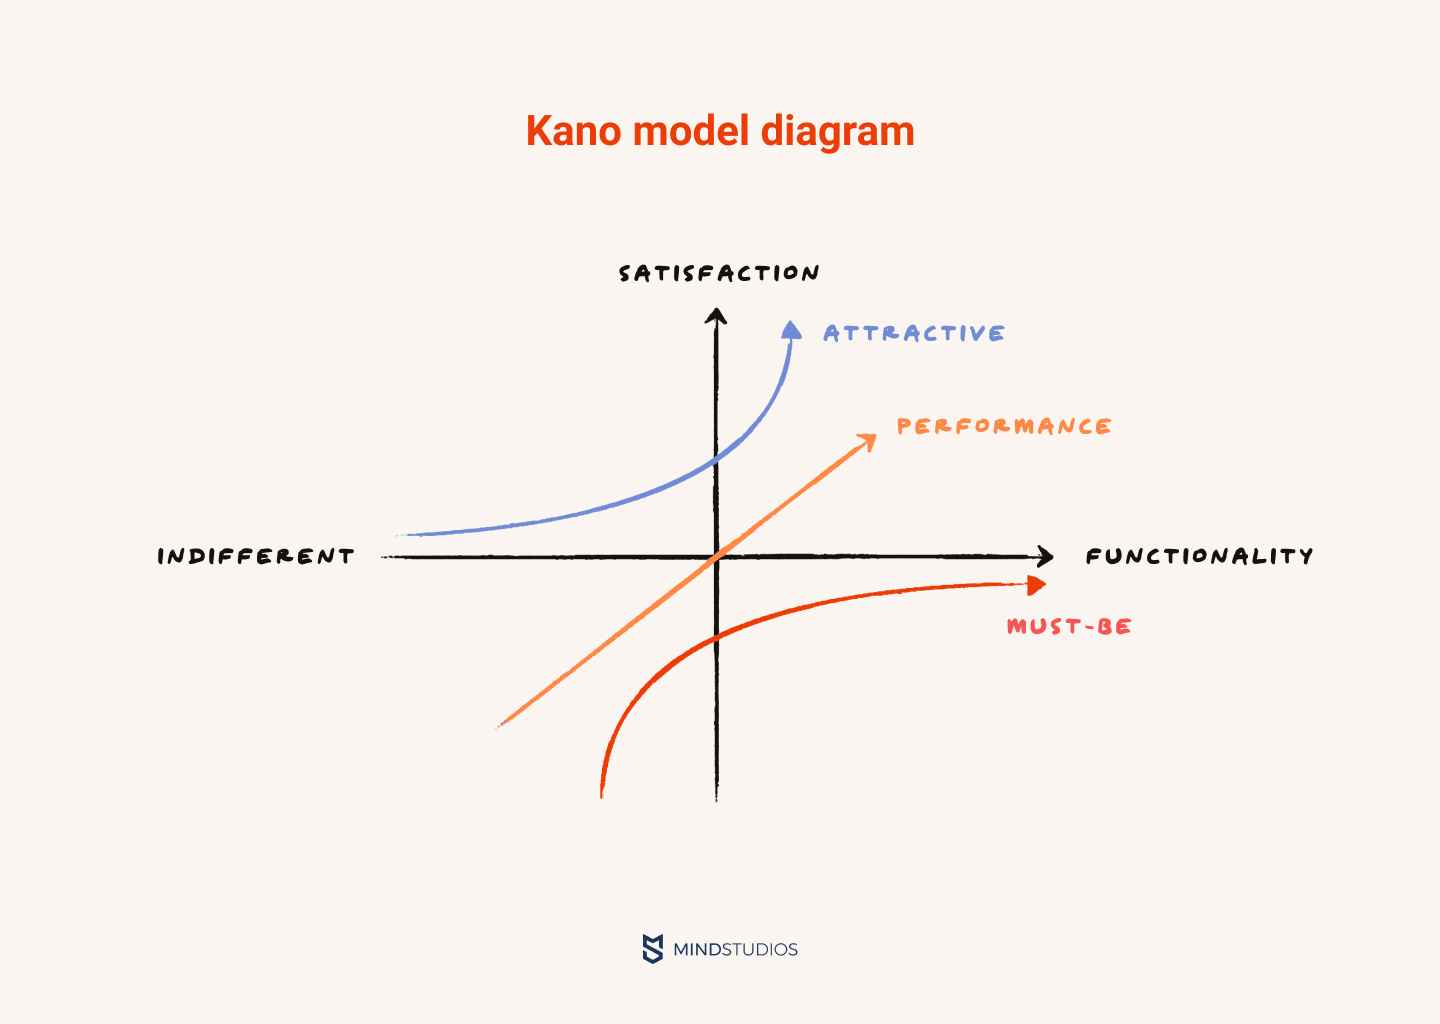 Kano model diagram